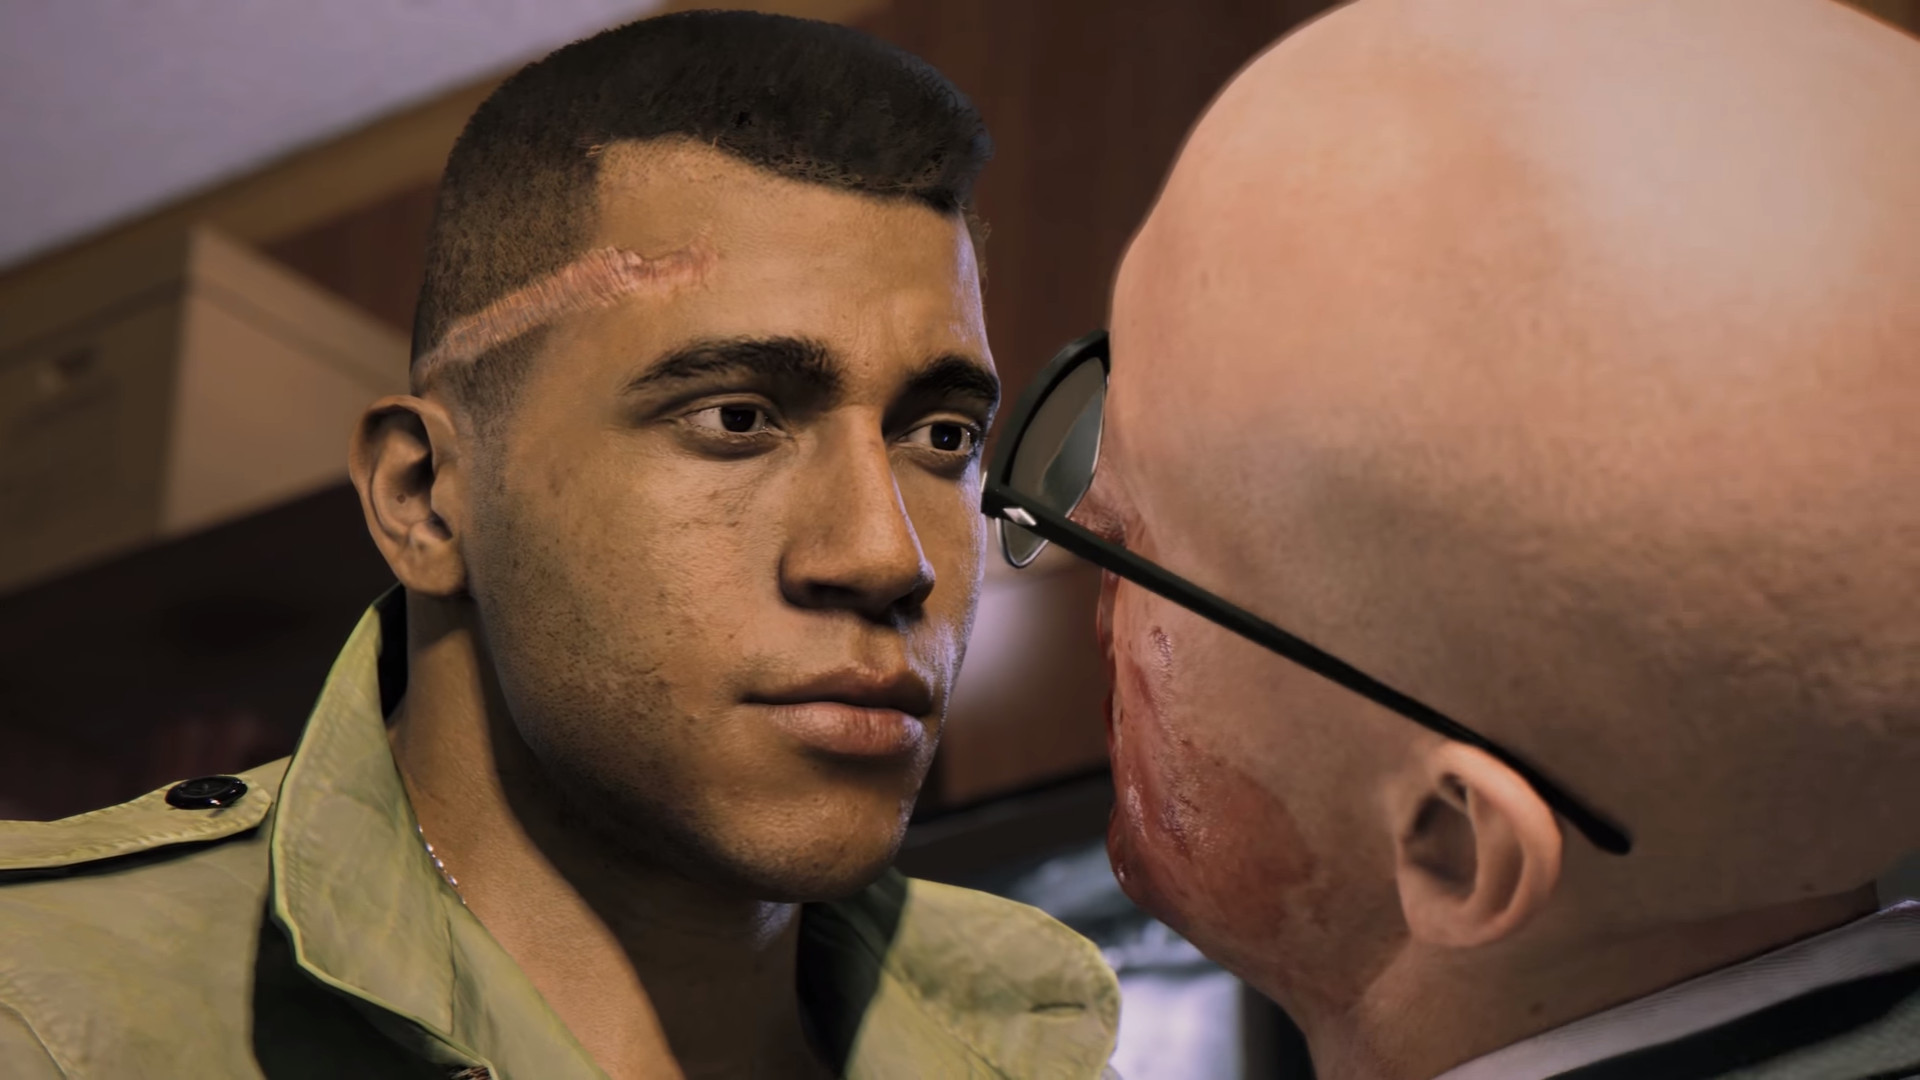 Mafia 3 Gameplay Shows 8 Increasingly Illegal Ways To Take Down The